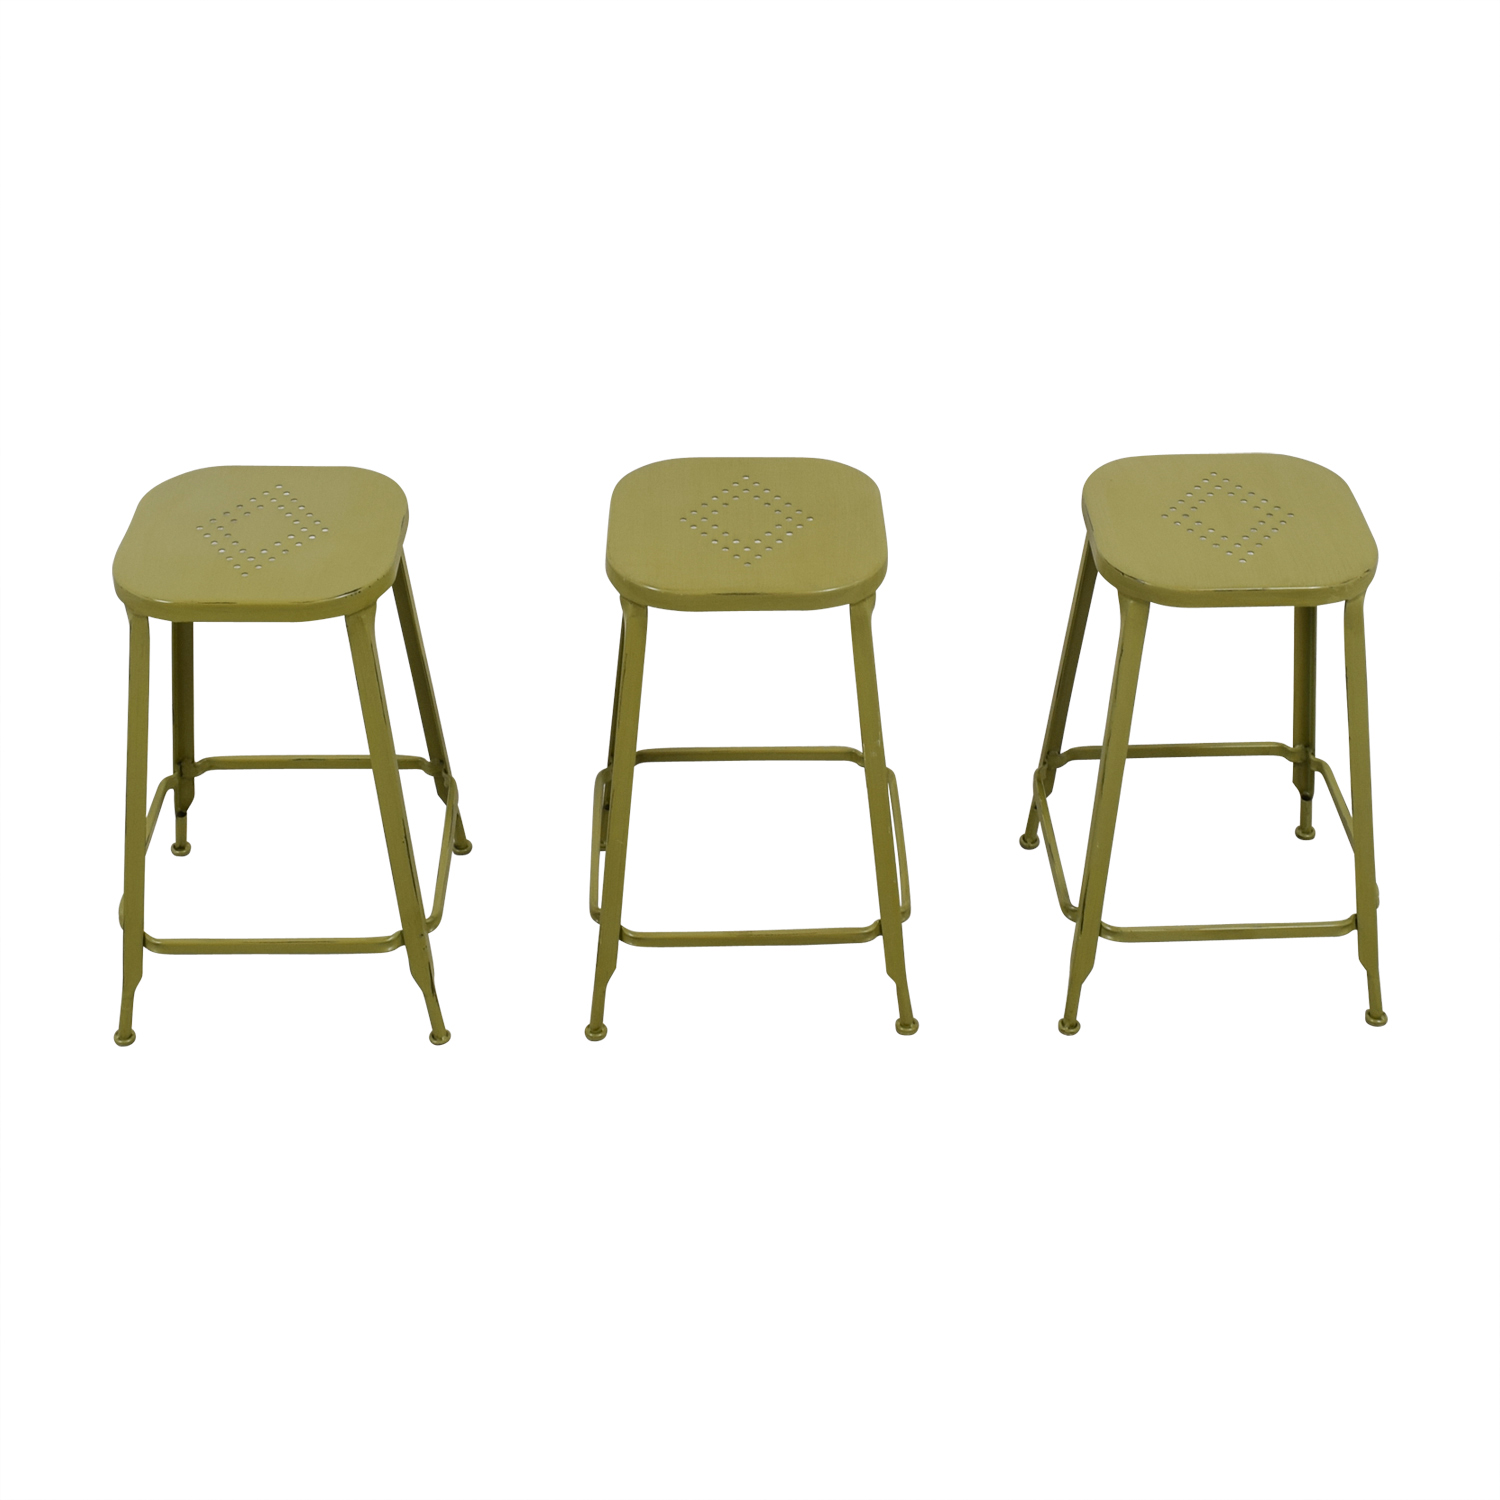 Green Metal Weathered Backless Stools / Stools